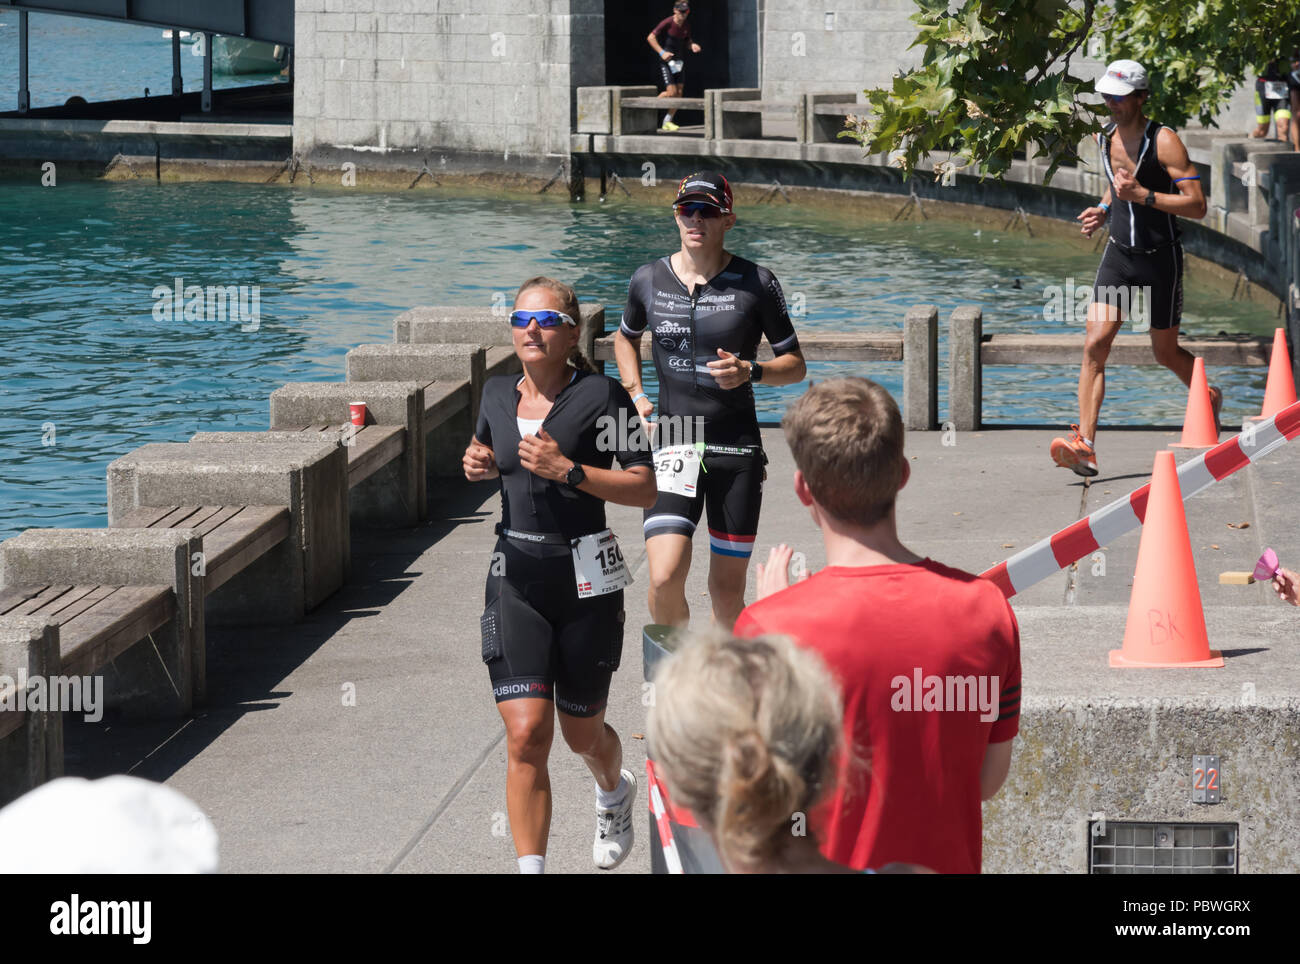 The Switzerland, 2018, Ironman Triathlon: Running course  A